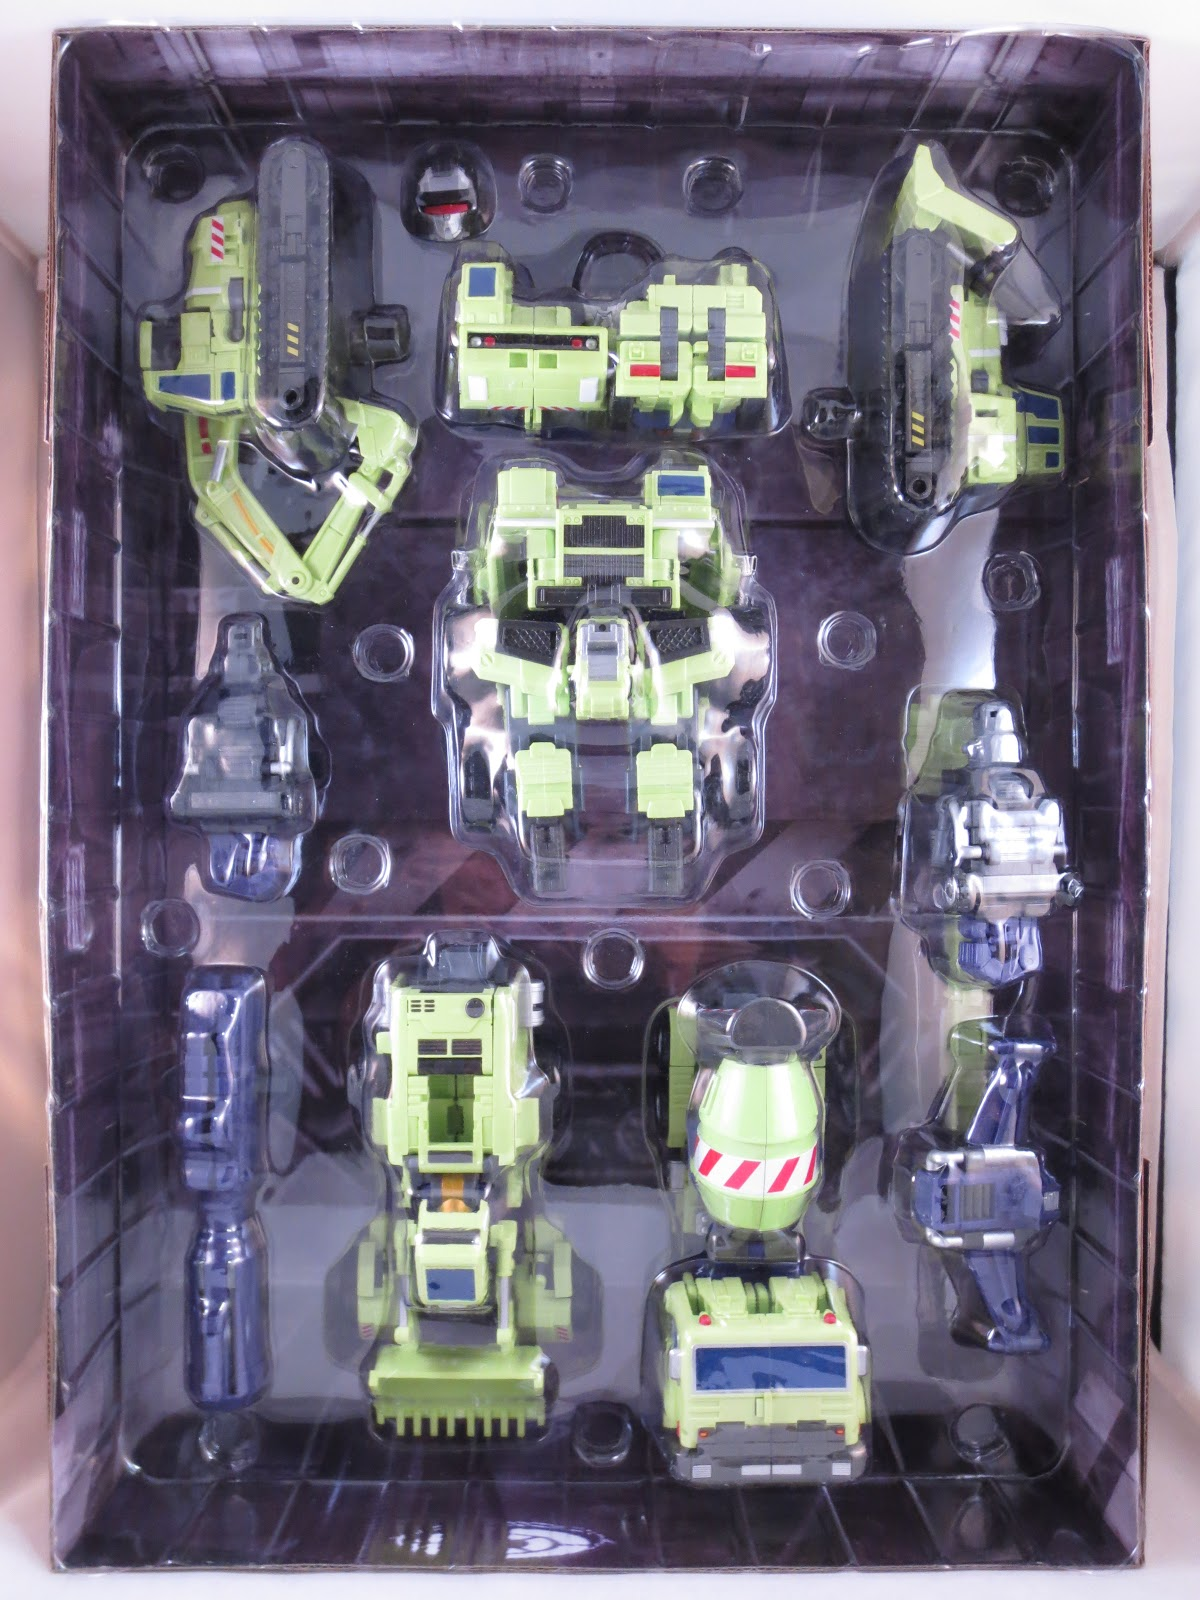 One Per Case 3rd Party Transformers Maketoys Green Giant Not Type 61 By Along With His Component Parts Has A Few Other Items Packed In The Tray Youll Also Find An Alternate Visor Clad Head Cannon